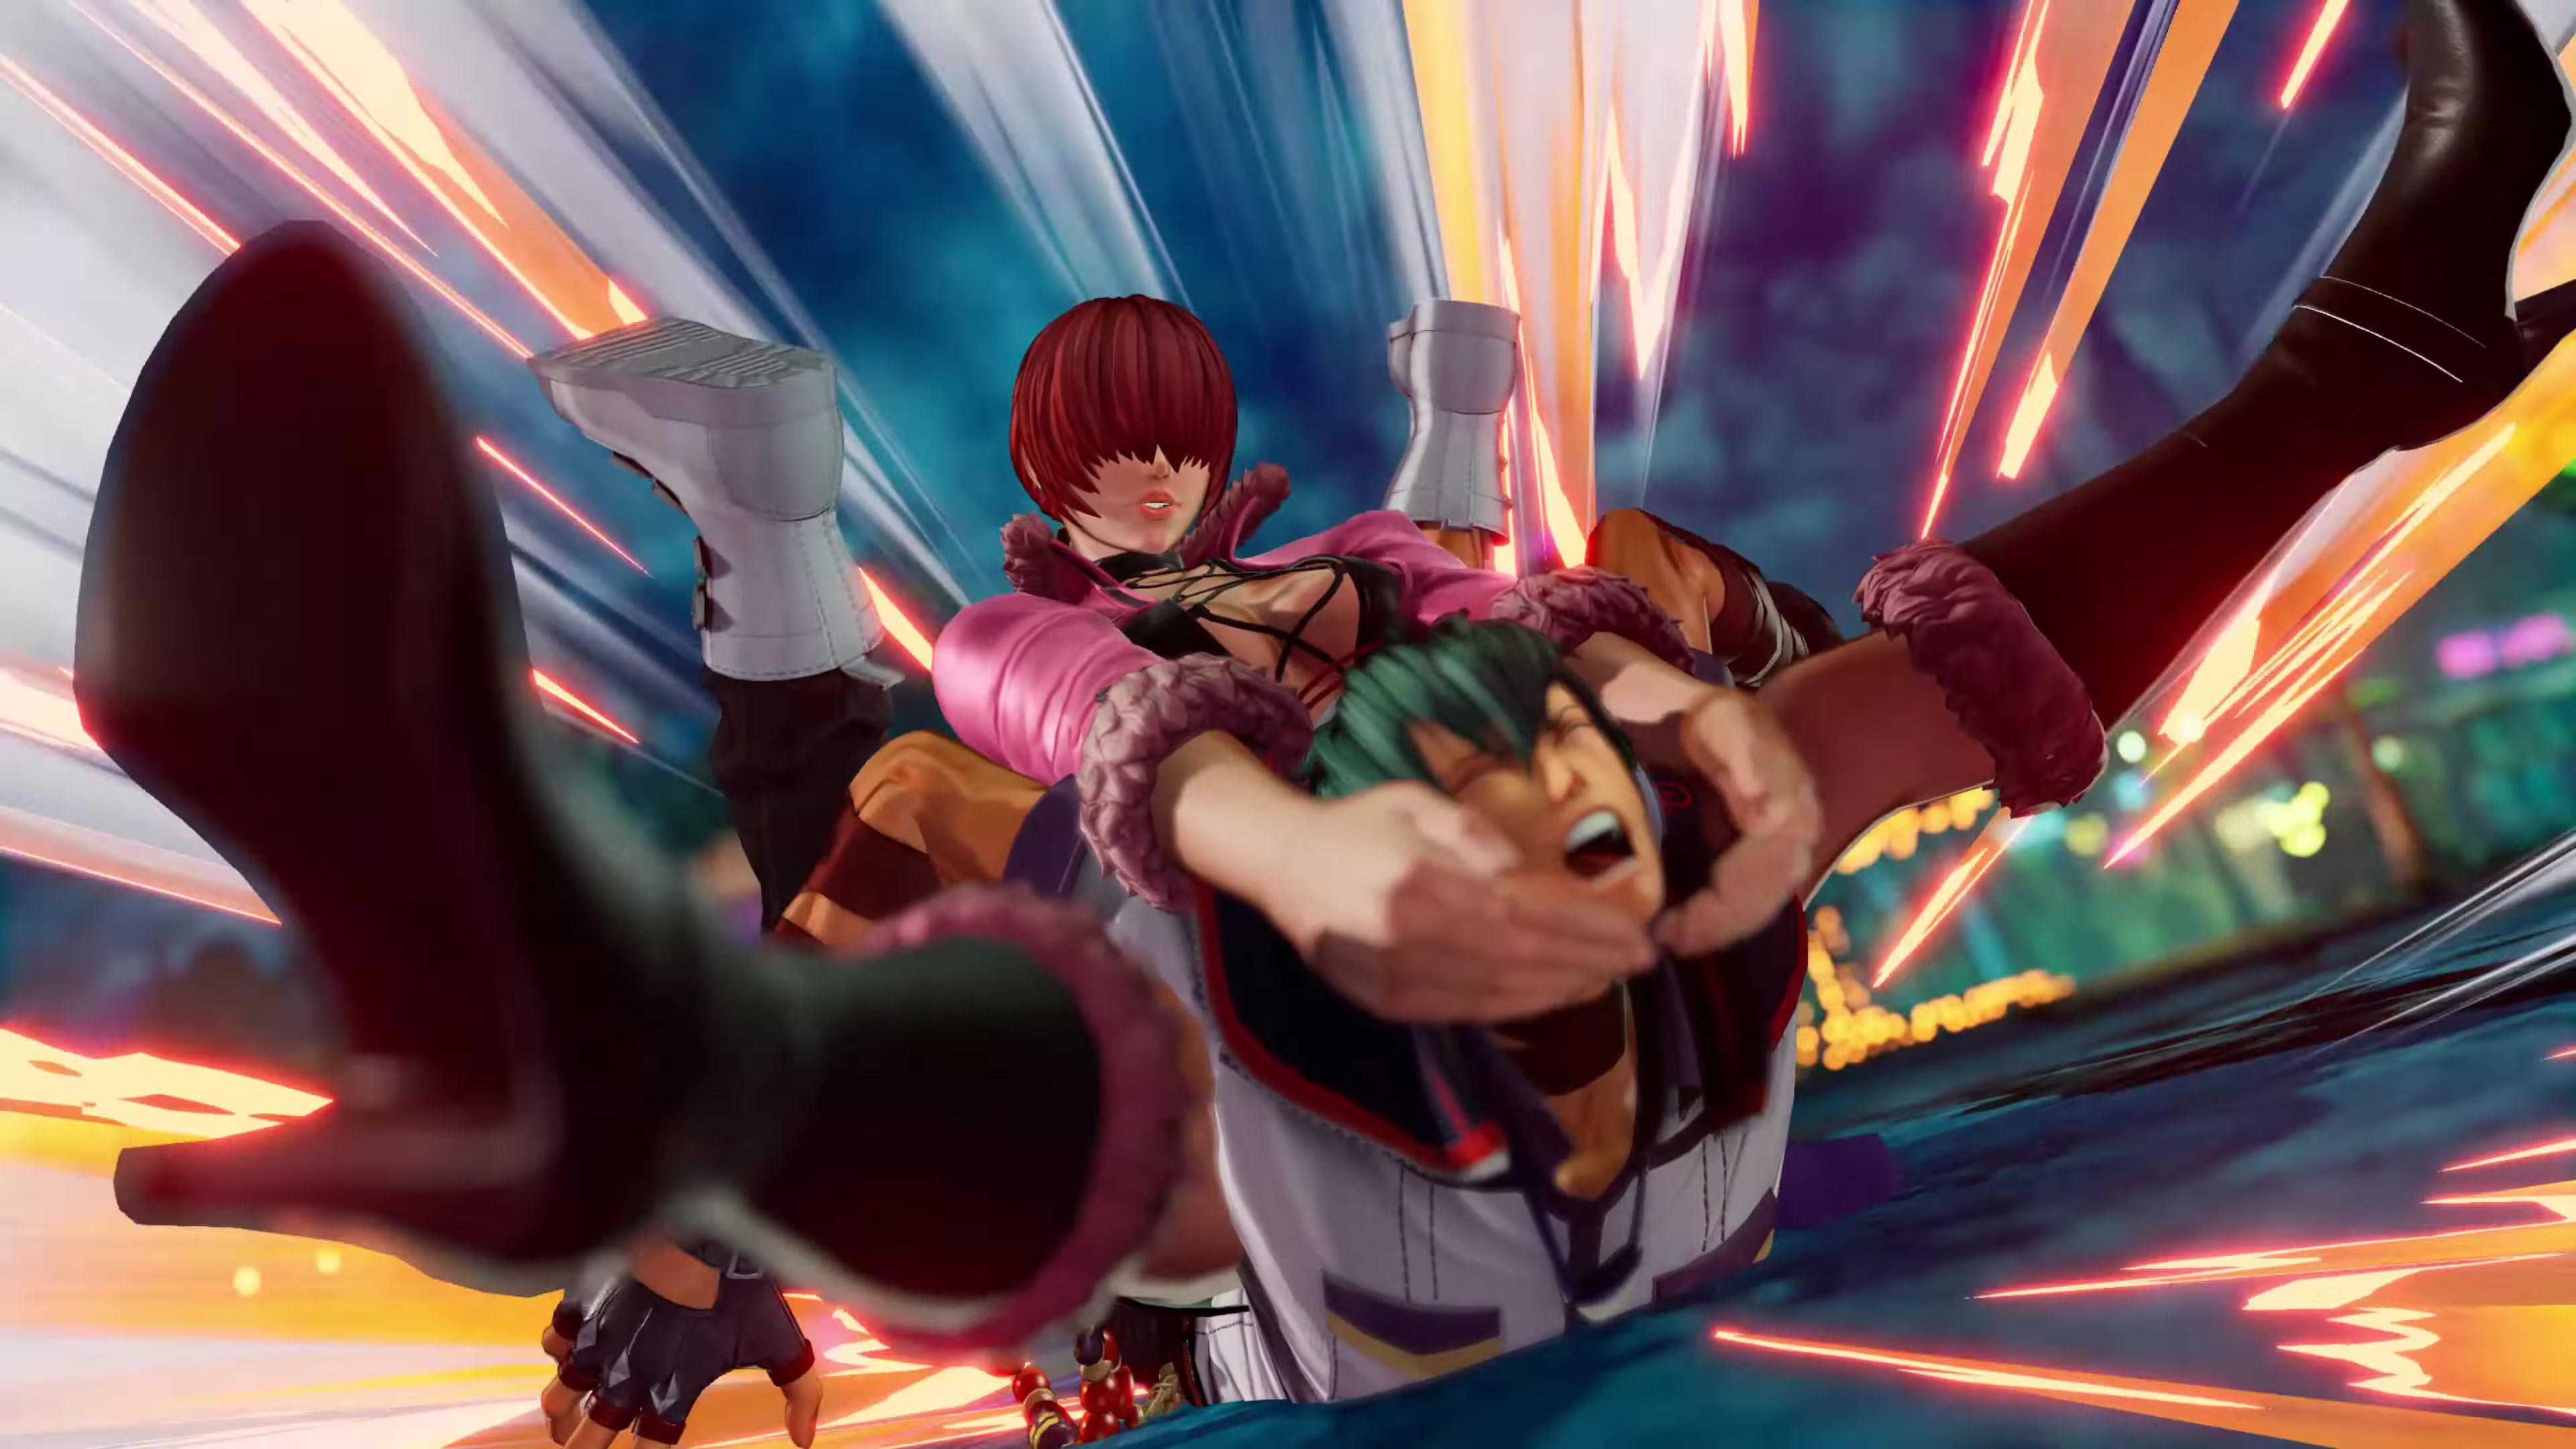 Shermie reveal 4 out of 9 image gallery